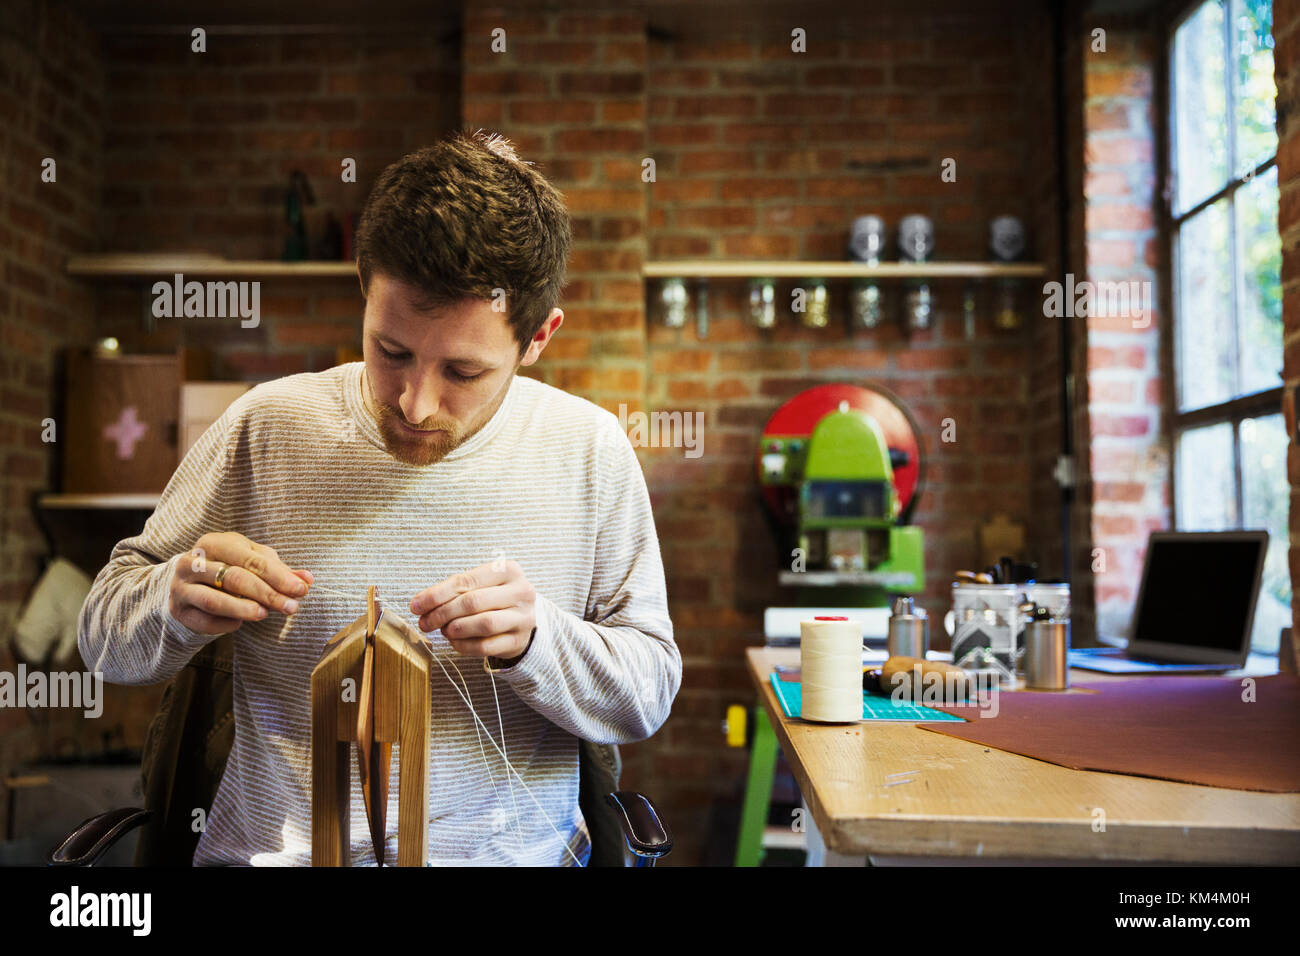 A craftsman seated at a bench in a small workshop, threading string through a wooden object. - Stock Image